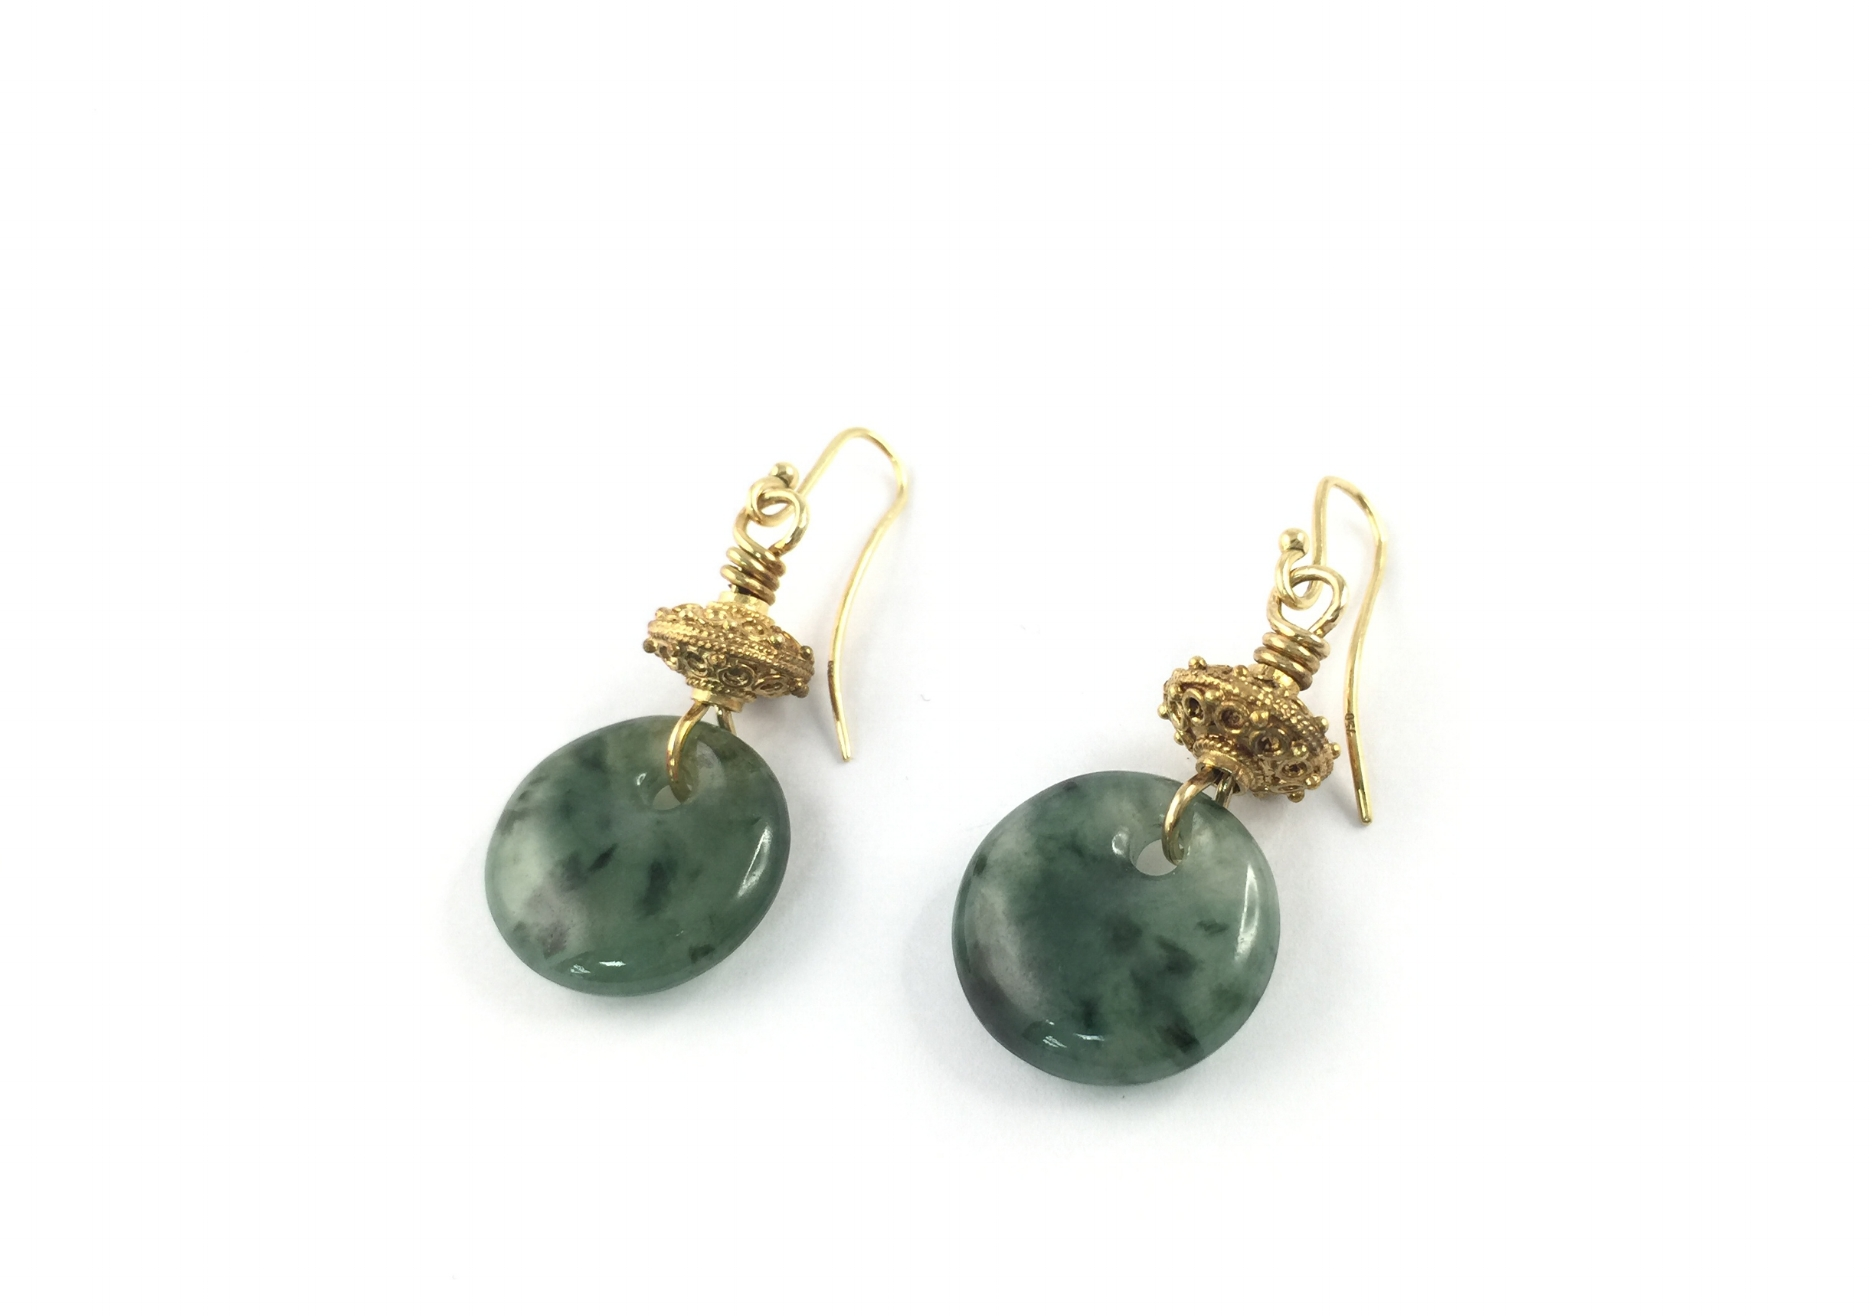 earring pendants of dragonwell jadeite and intricate handcrafted bead in 18k.